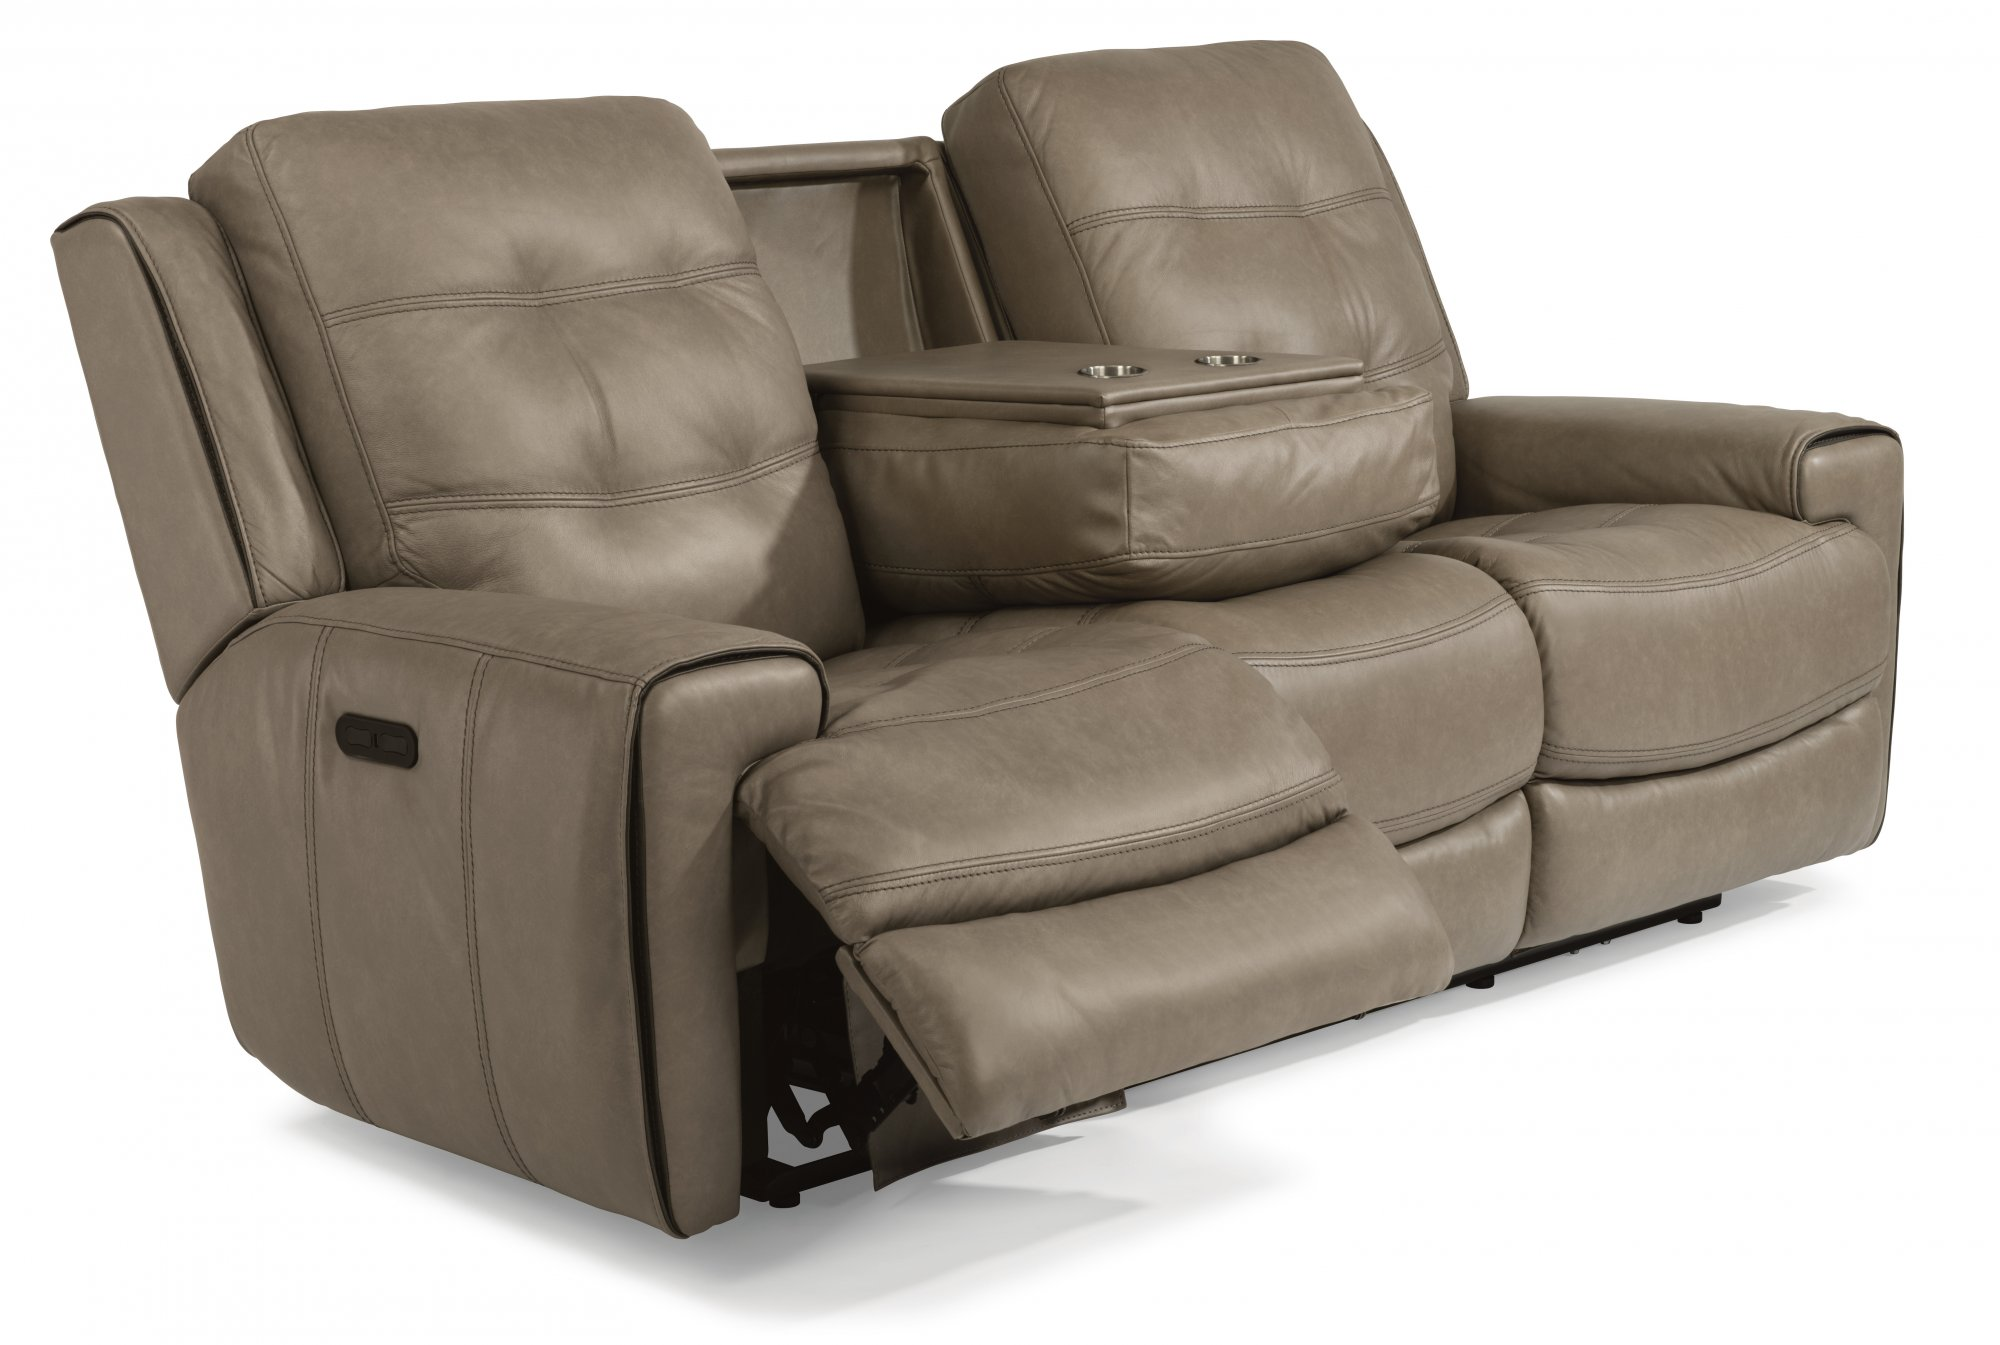 Awesome Leather Recliner Sofa 69 Sofas and Couches Set with